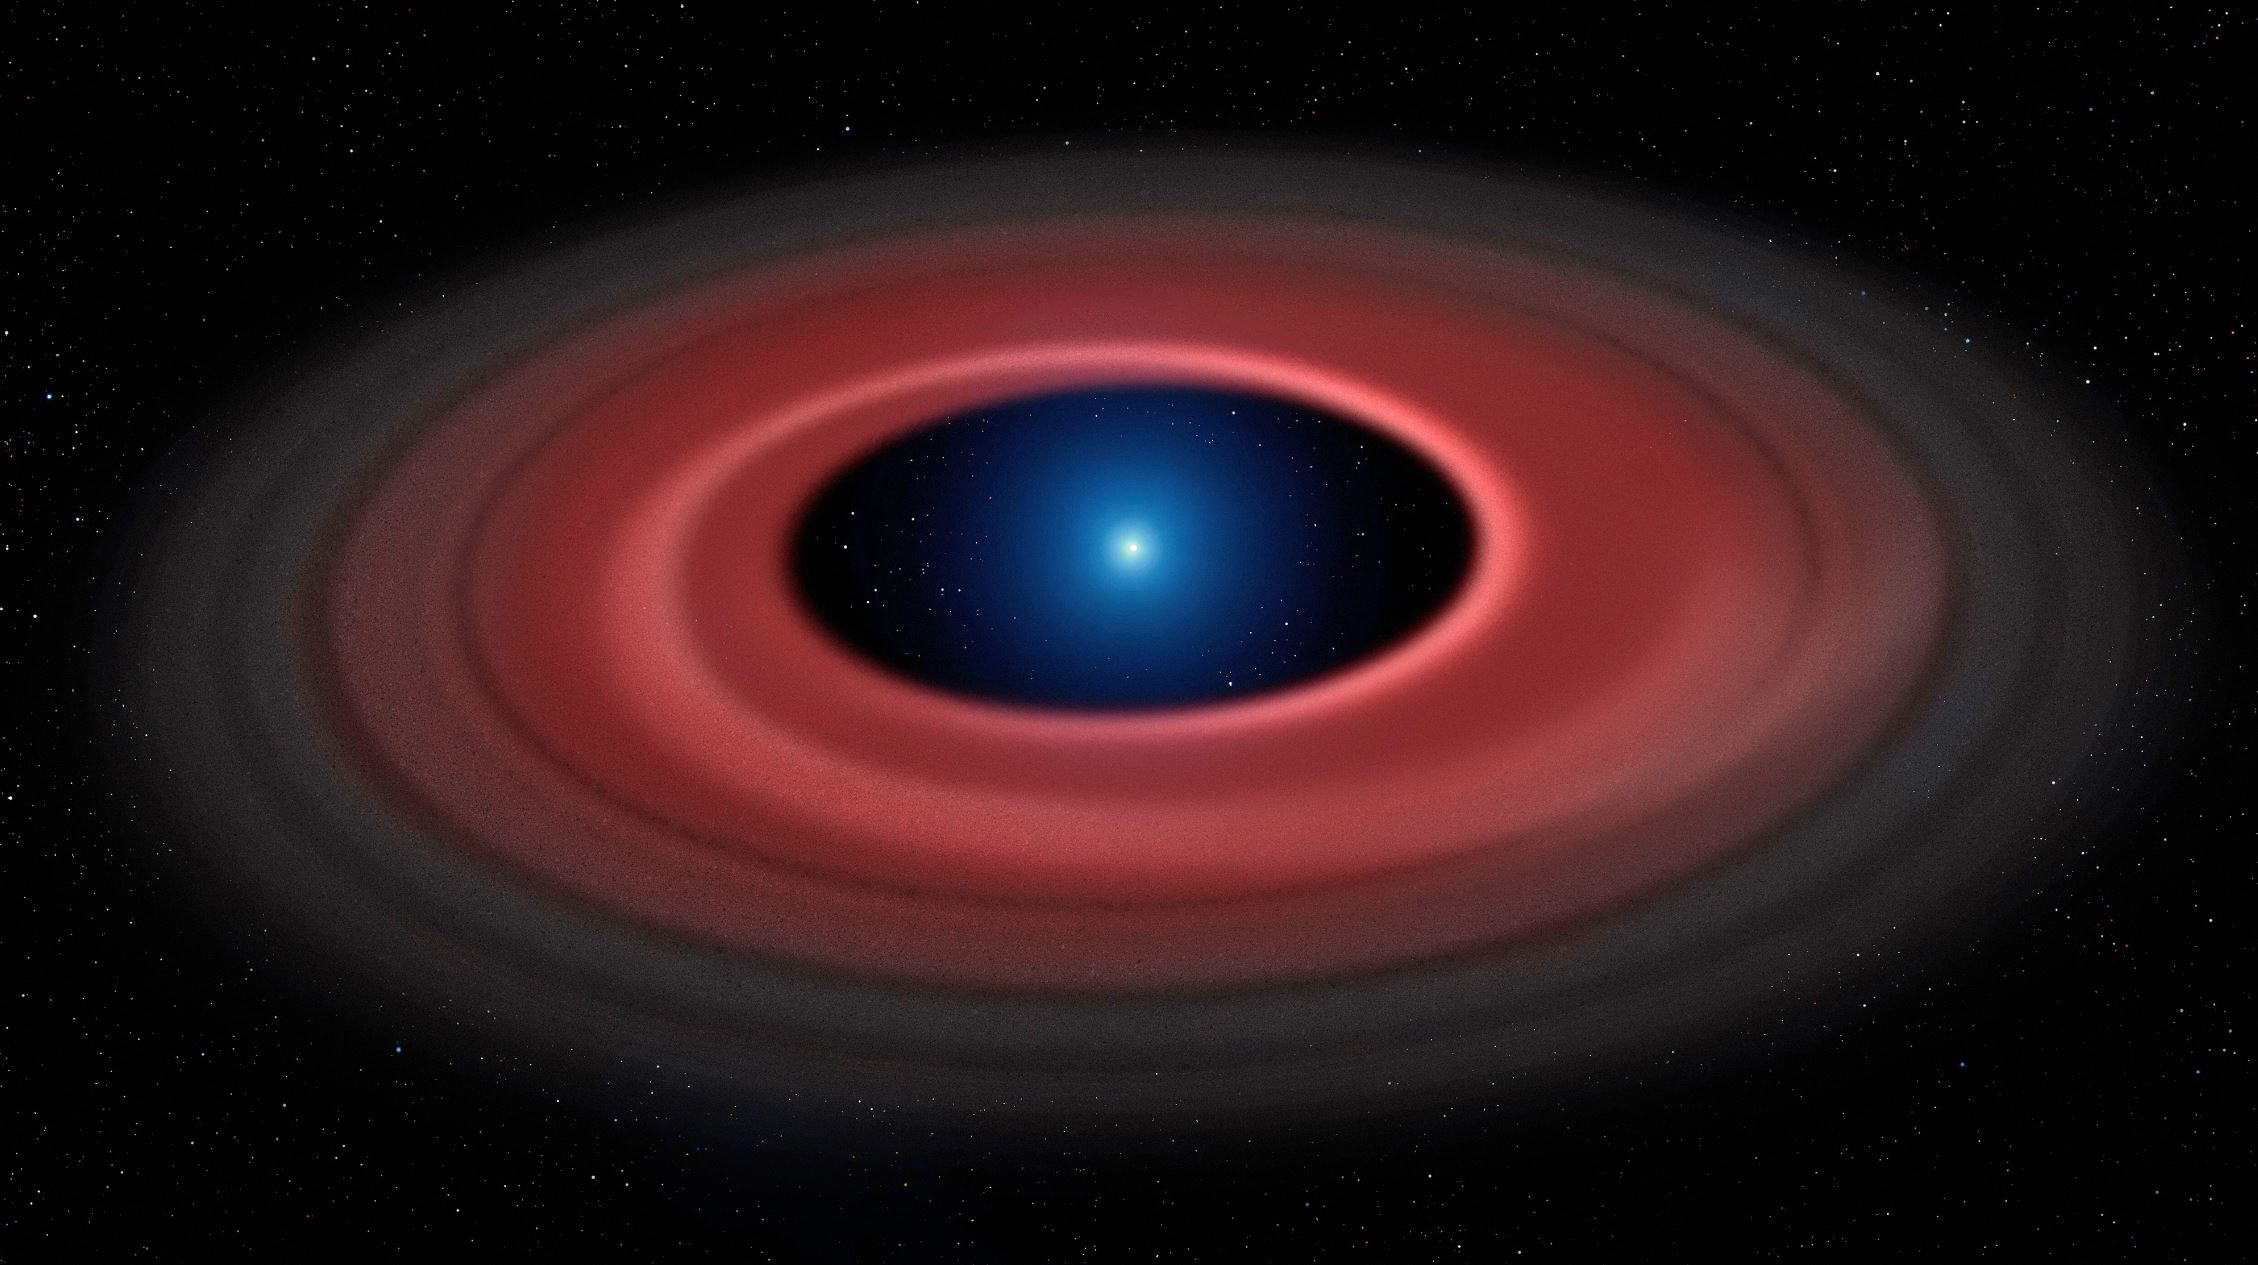 An asteroid torn apart by the strong gravity of a white dwarf has formed a ring of dust particles and debris orbiting the Earth-sized burnt out stellar core.  - Image Credit: Mark Garlick ( www.markgarlick.com ) and University of Warwick/ESO via  ESO.org